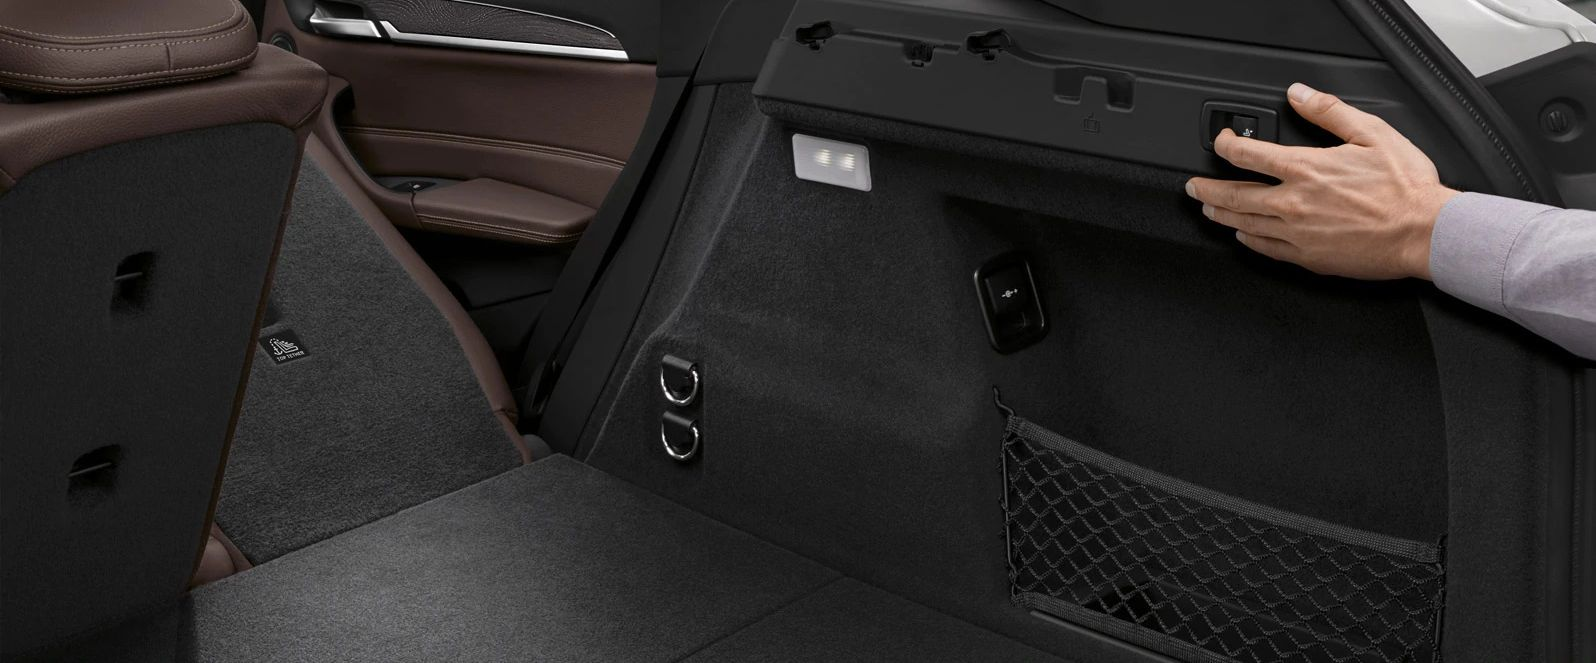 Spacious Cargo Area in the 2019 X1